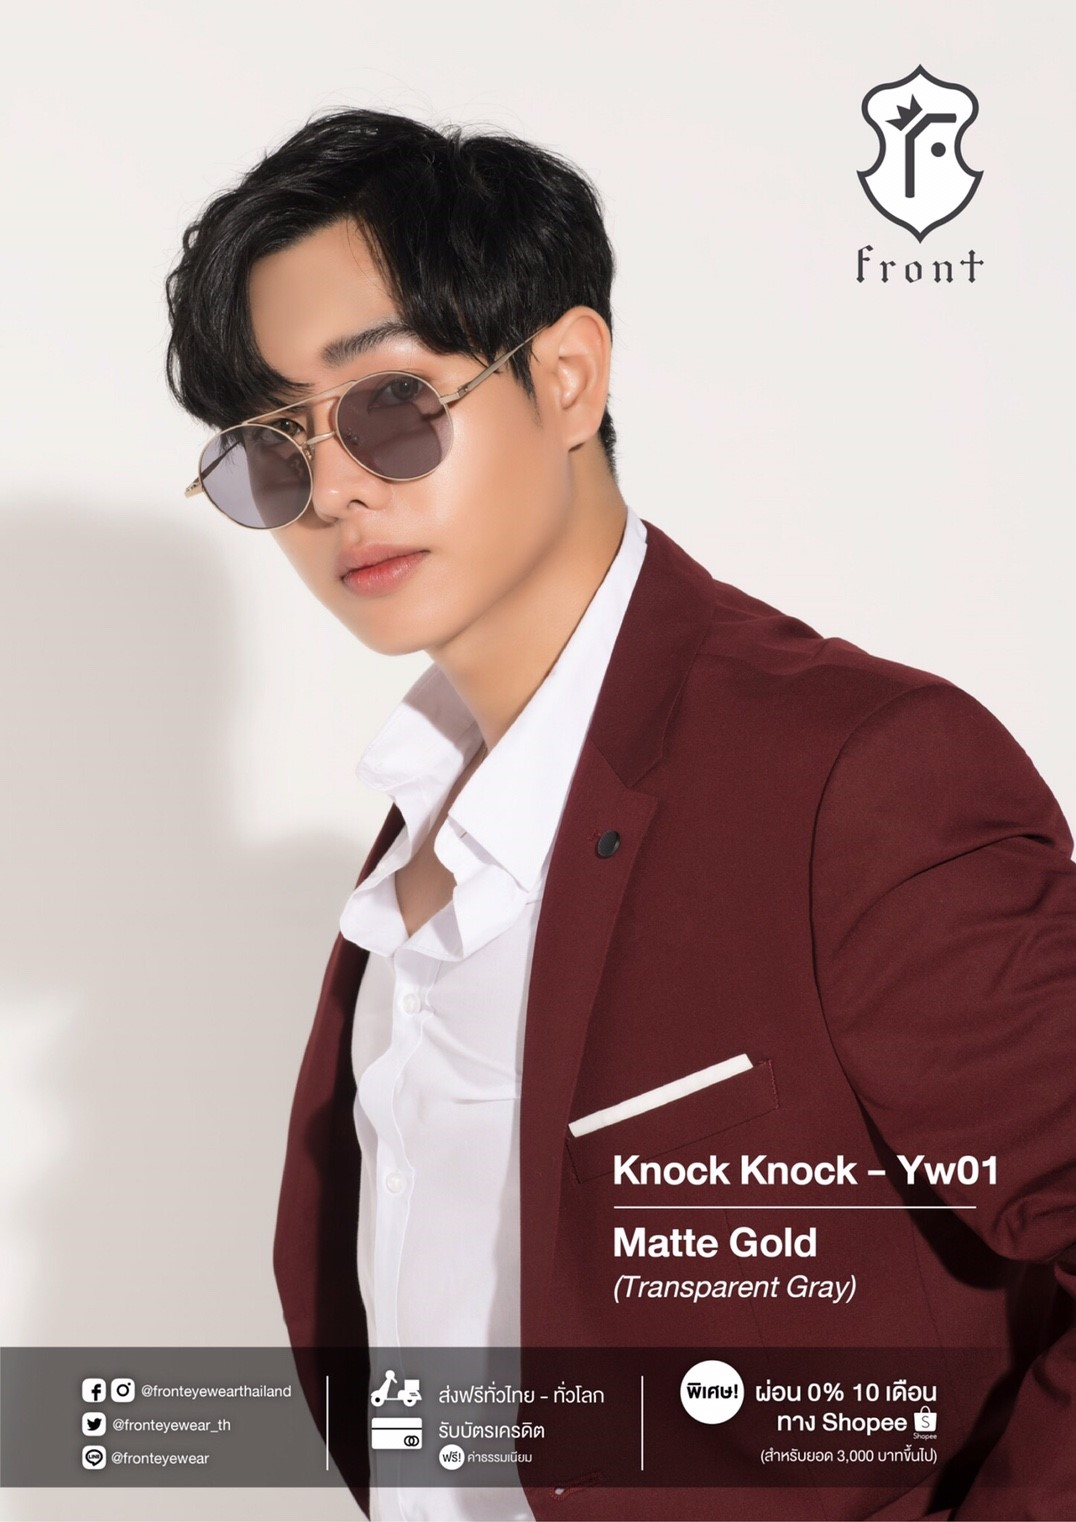 FrontxPeckPalit (A4)_190308_0002